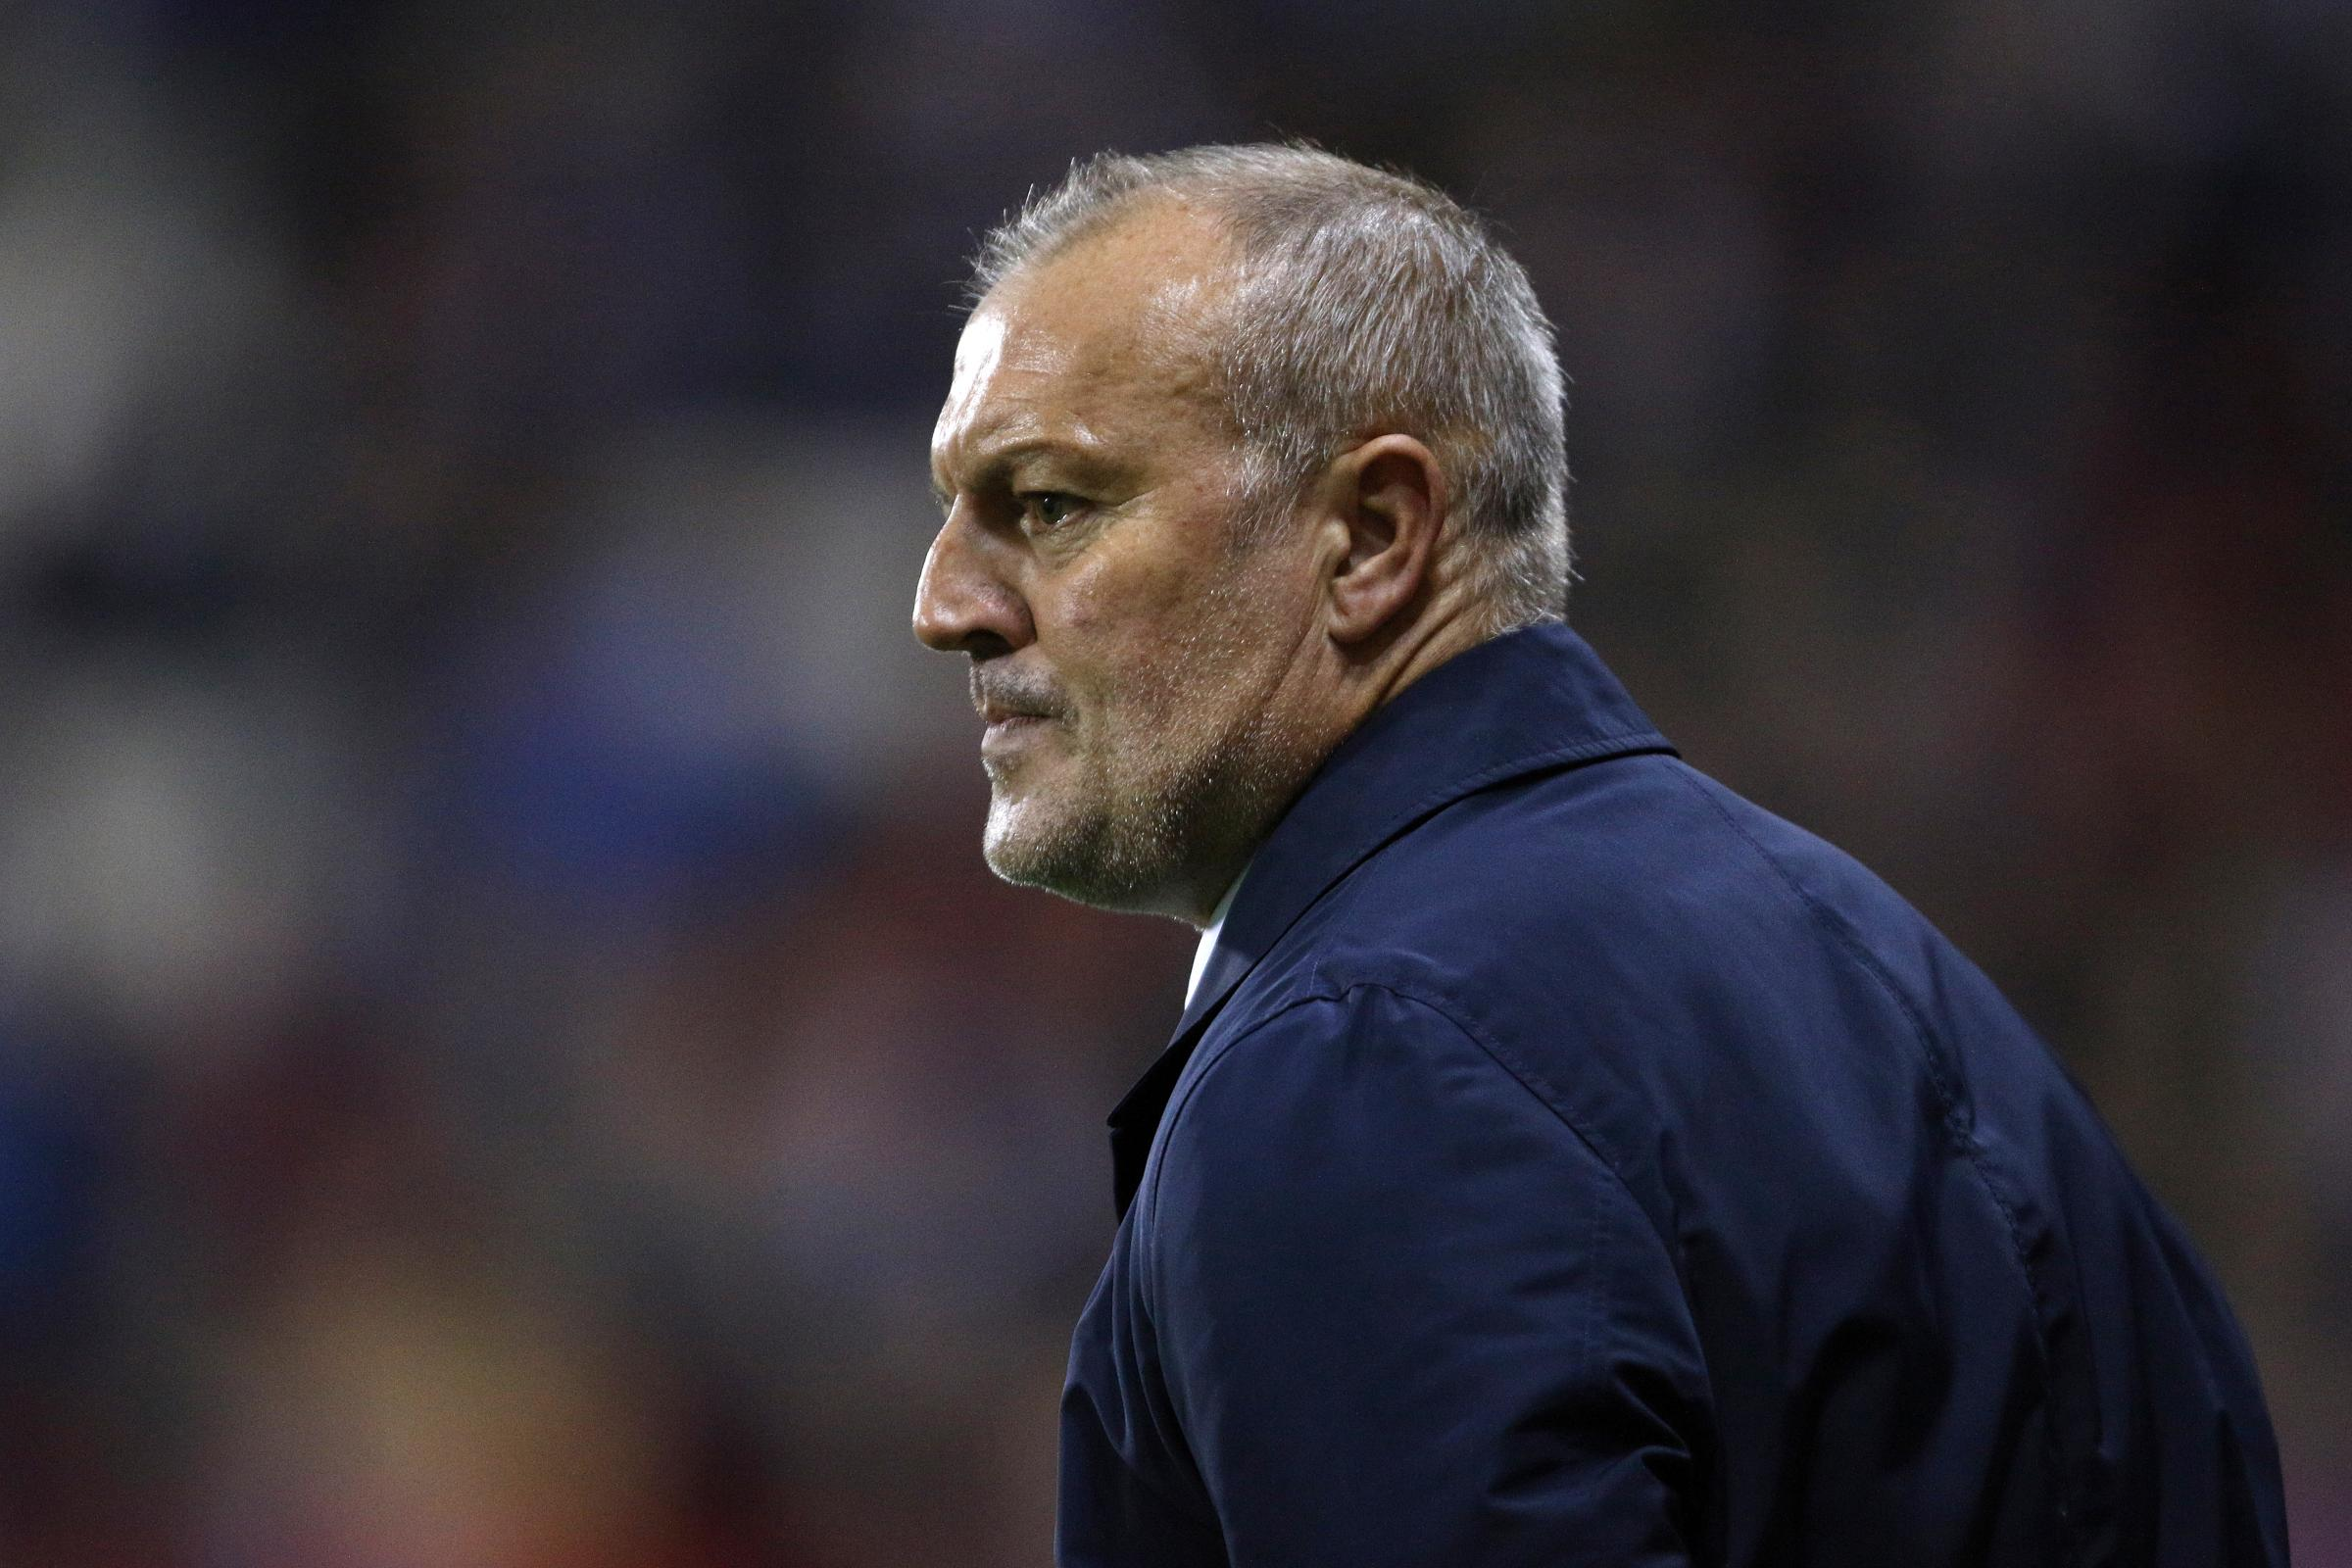 Neil Redfearn has taken over Liverpool Ladies